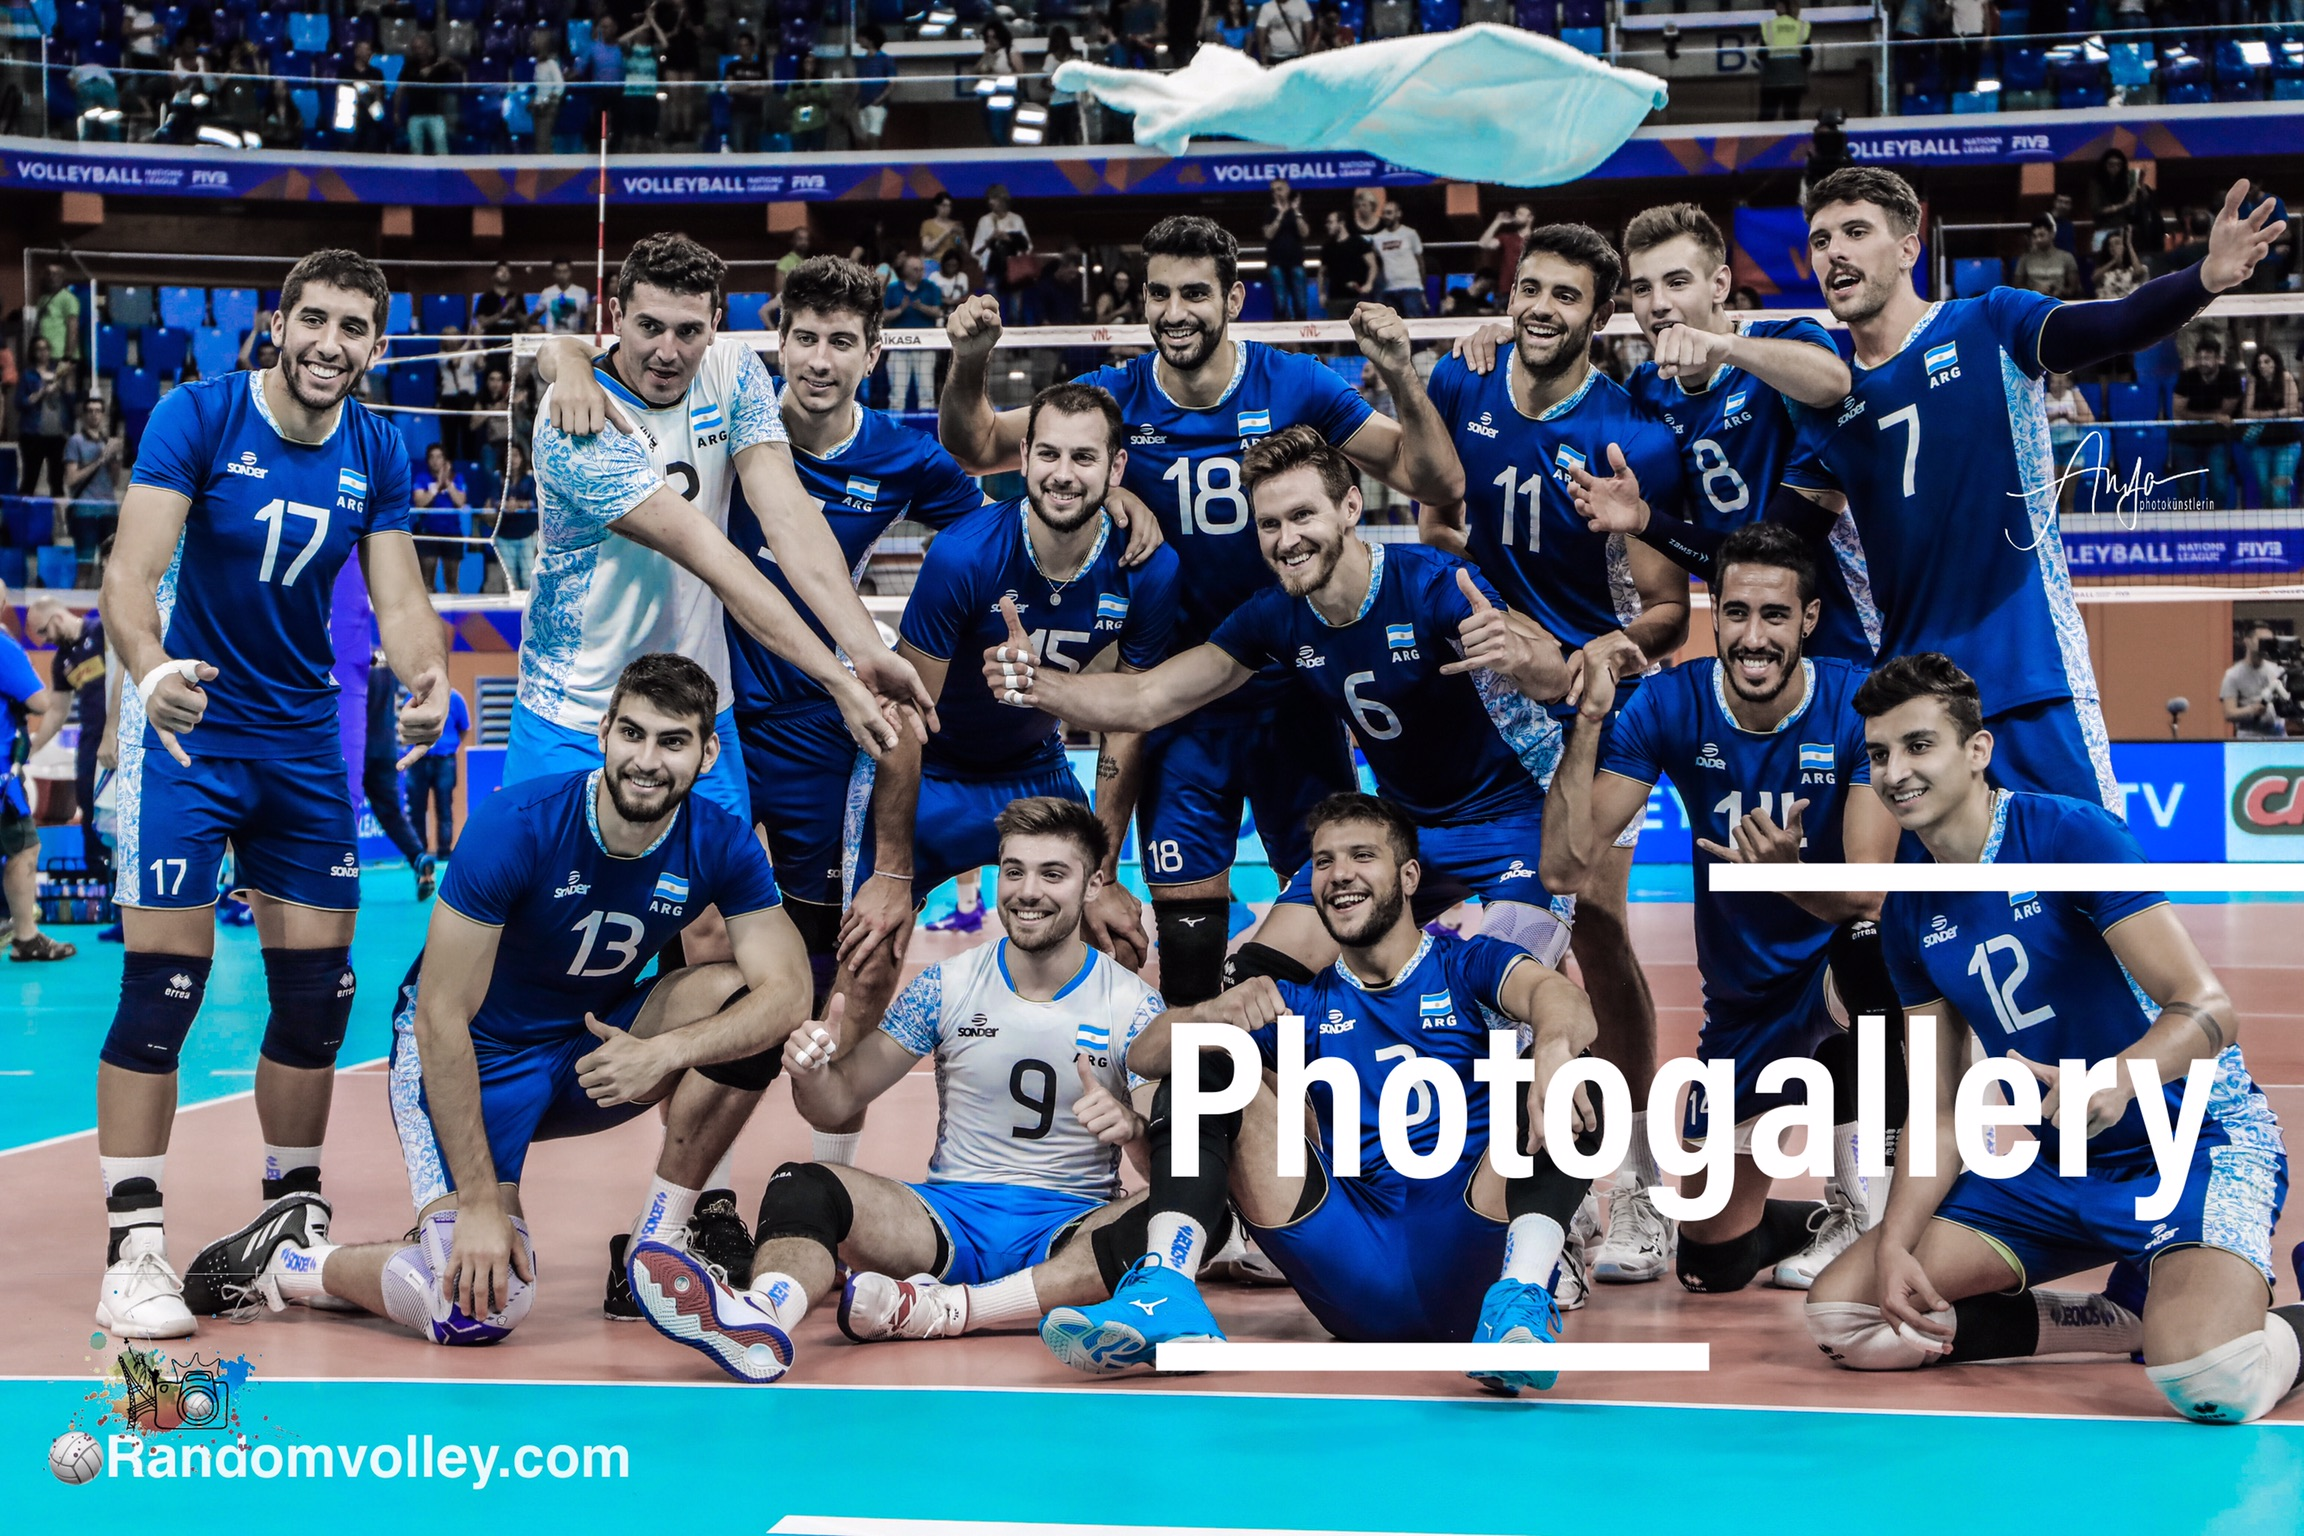 VNL 2019: Photogallery of Italy-Argentina